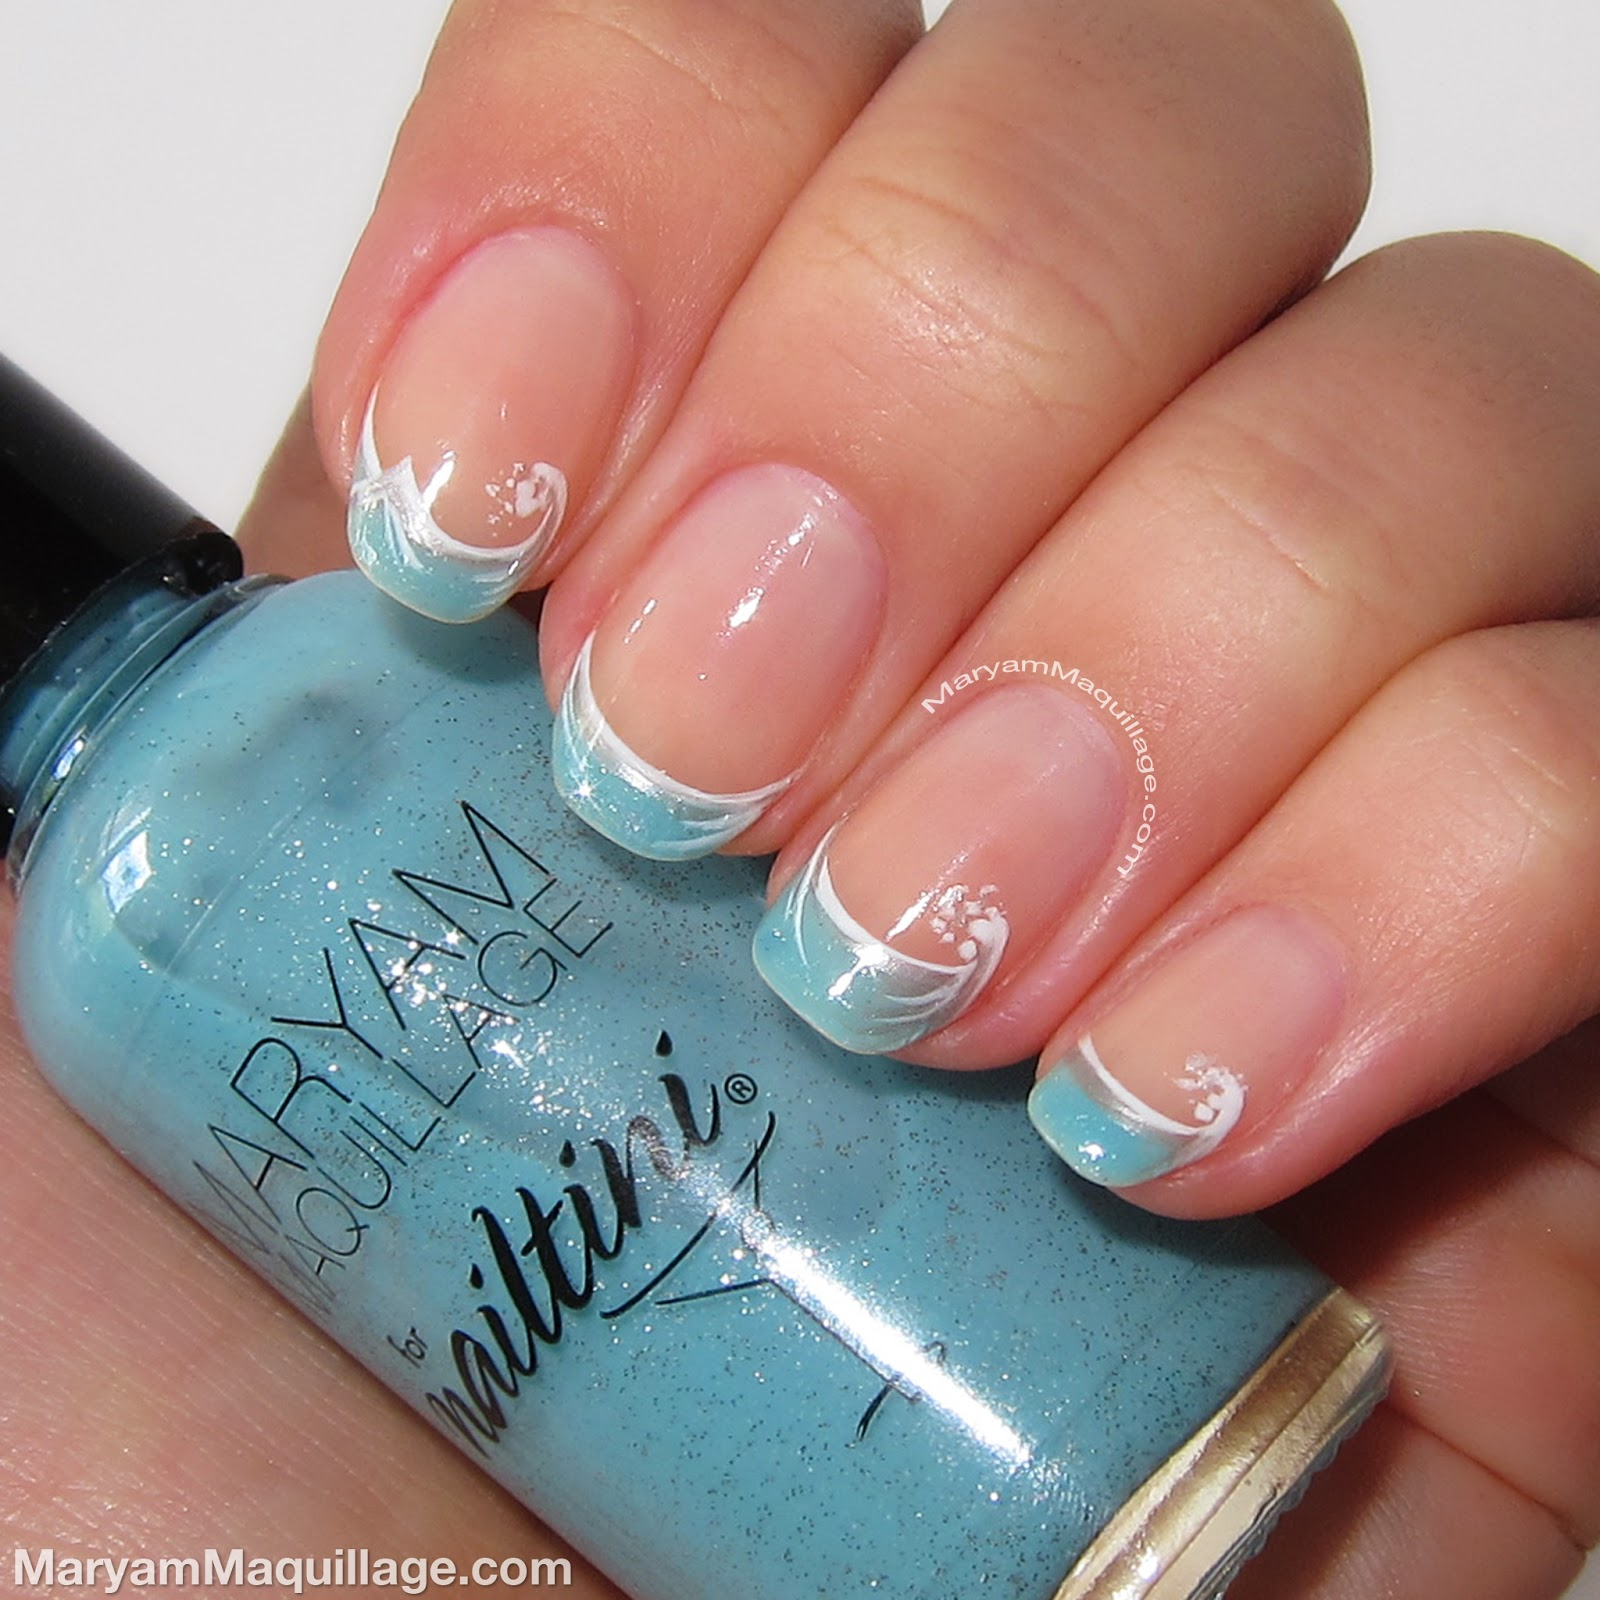 "French Design Nail Art Gallery: Maryam Maquillage: ""Ocean Waves"" Artistic French Nail Art"